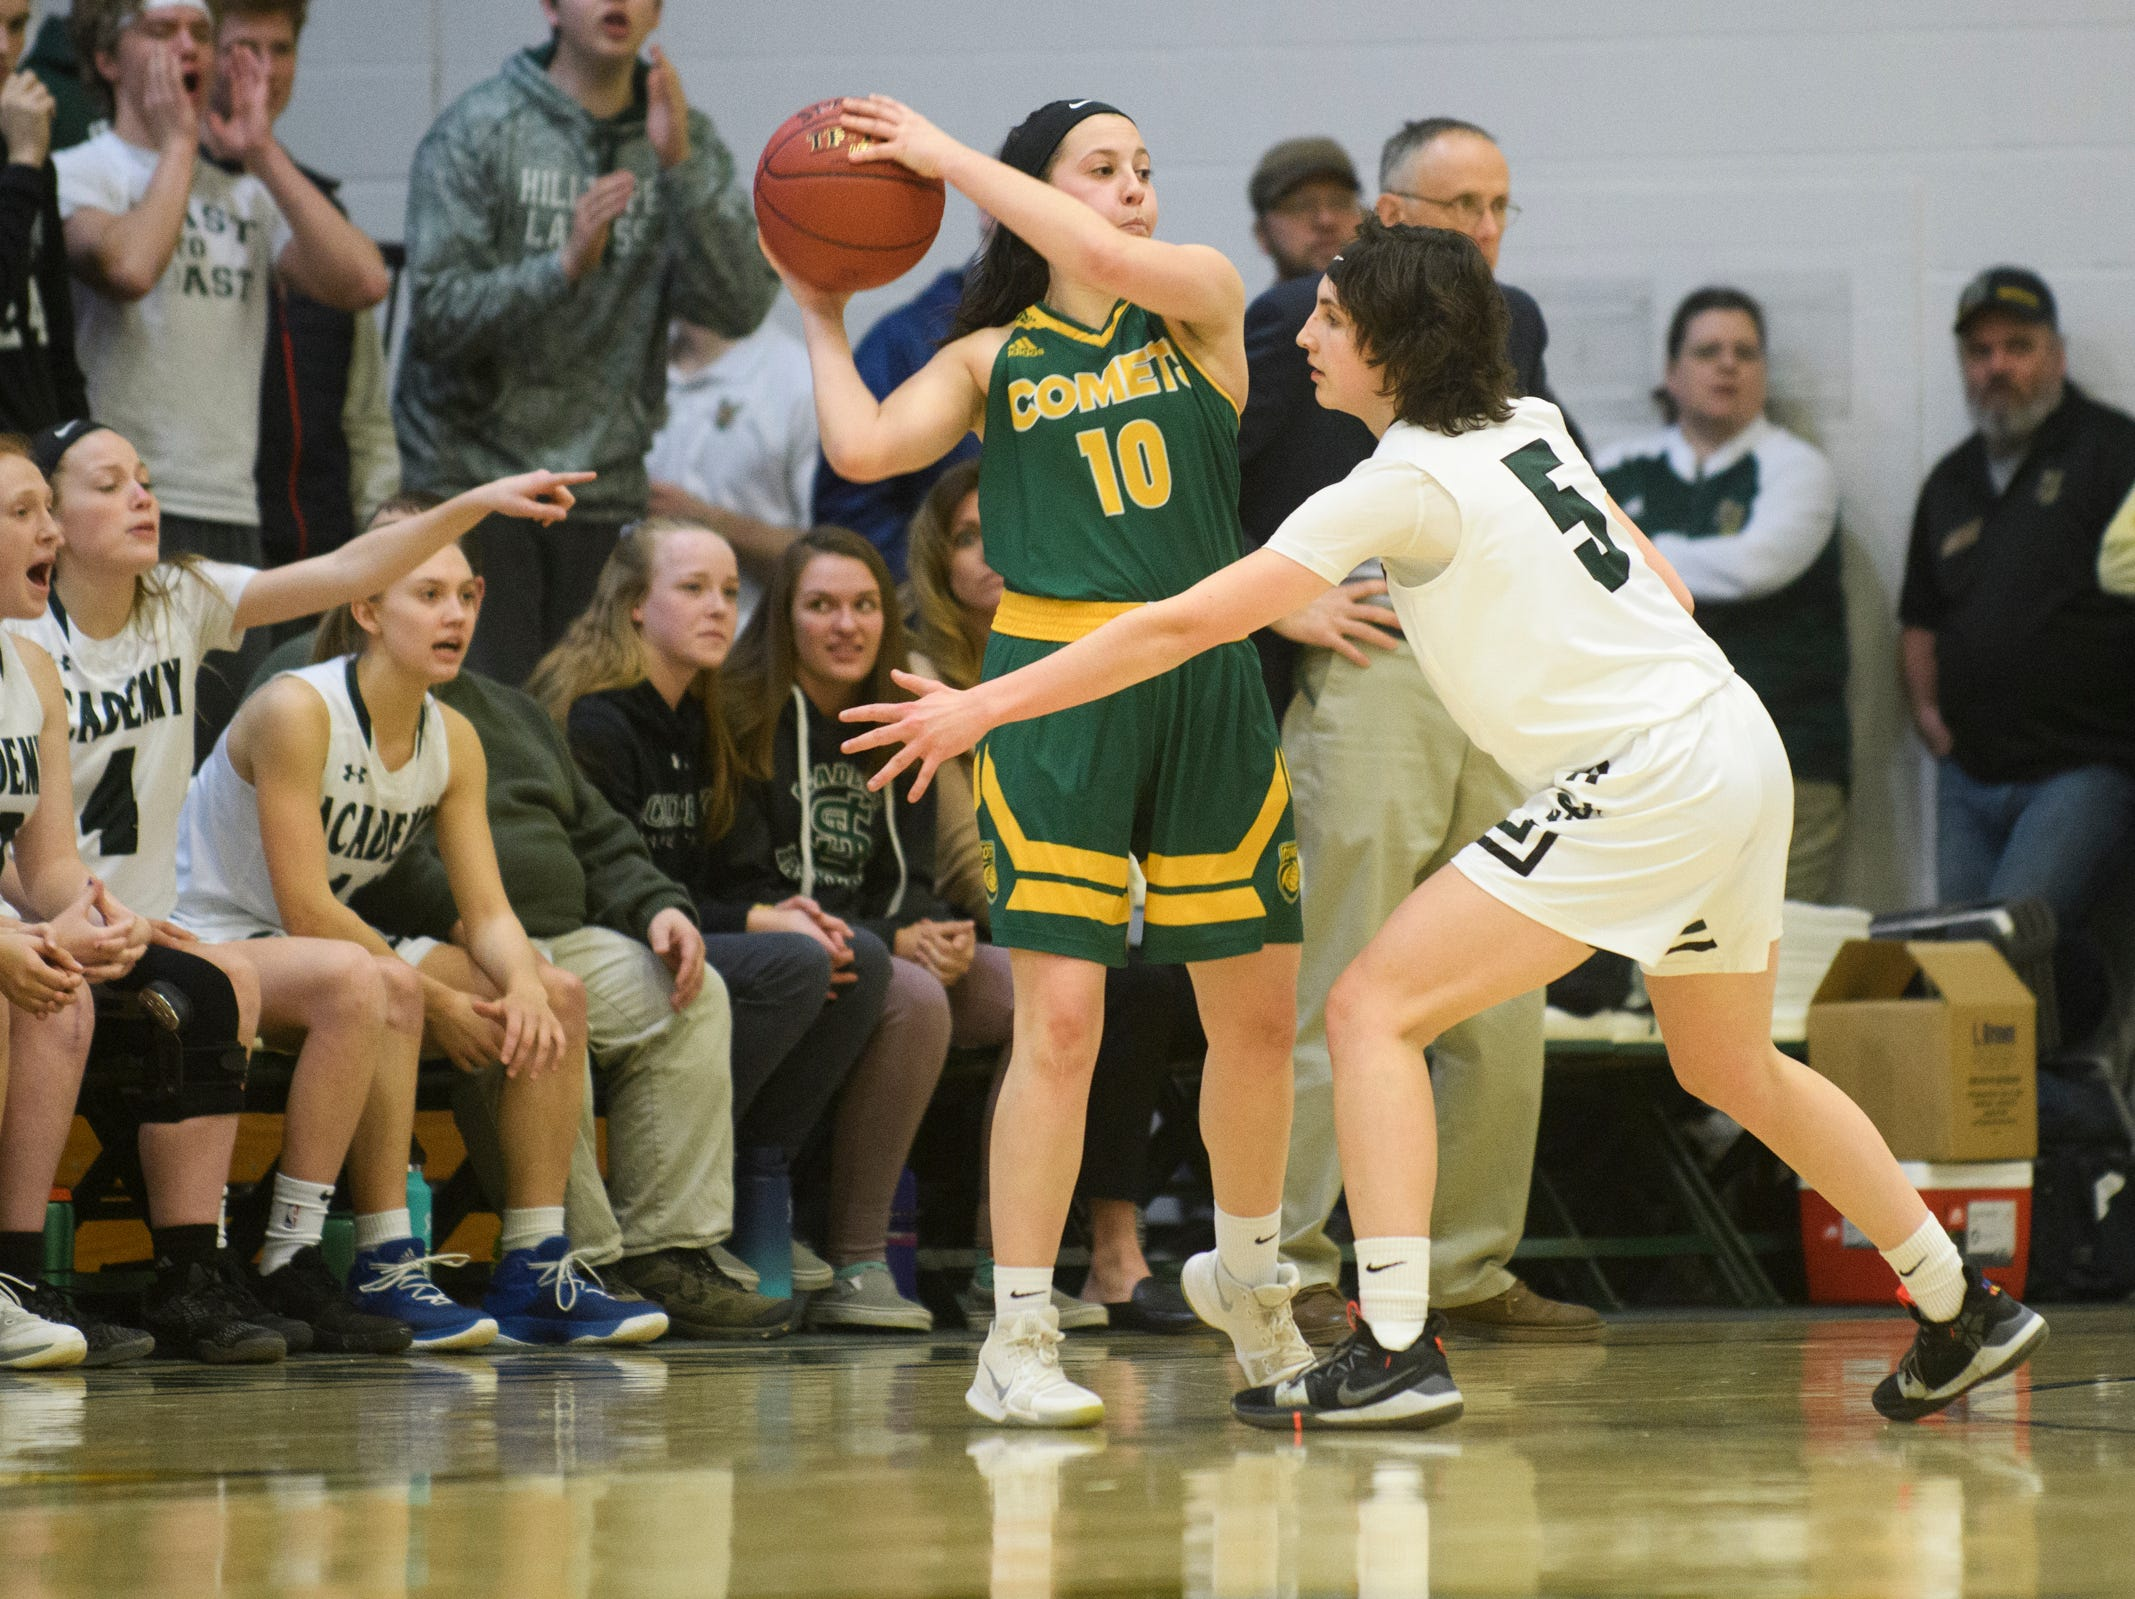 BFA's Leah Larivee (10) looks to pass the ball past St. Johnsbury's Sadie Stetson (5) during the girls semifinal basketball game between the BFA St. Albans Comets and the St. Johnsbury Hilltoppers at Patrick Gym on Wednesday night March 6, 2019 in Burlington, Vermont.